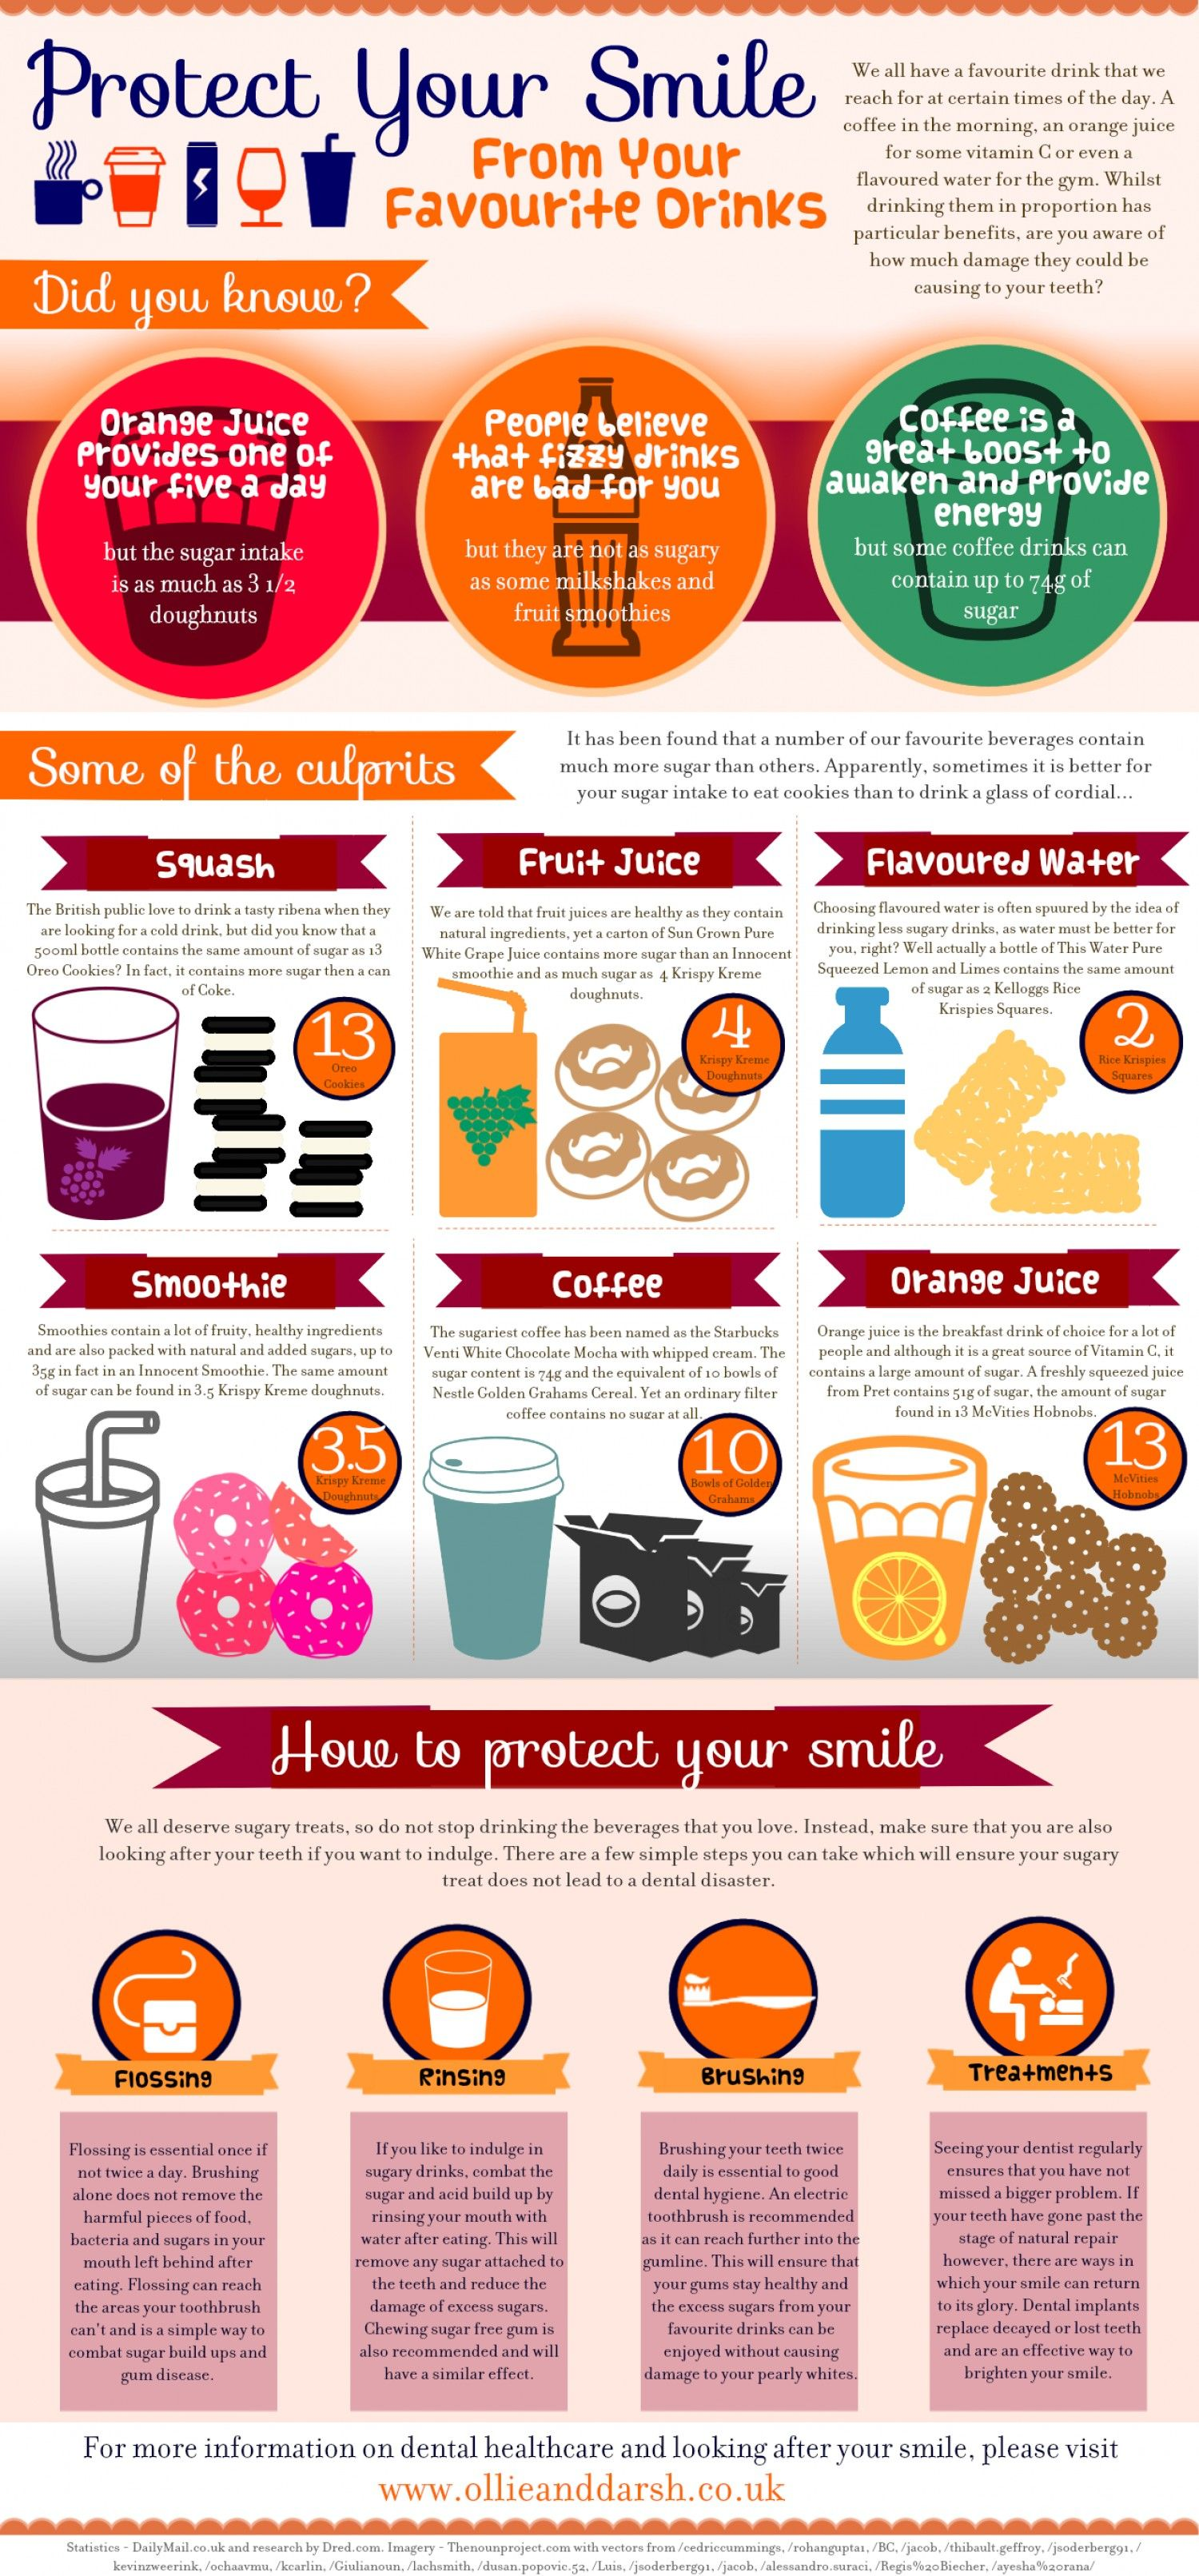 Protect Your Smile From Your Favorite Drinks